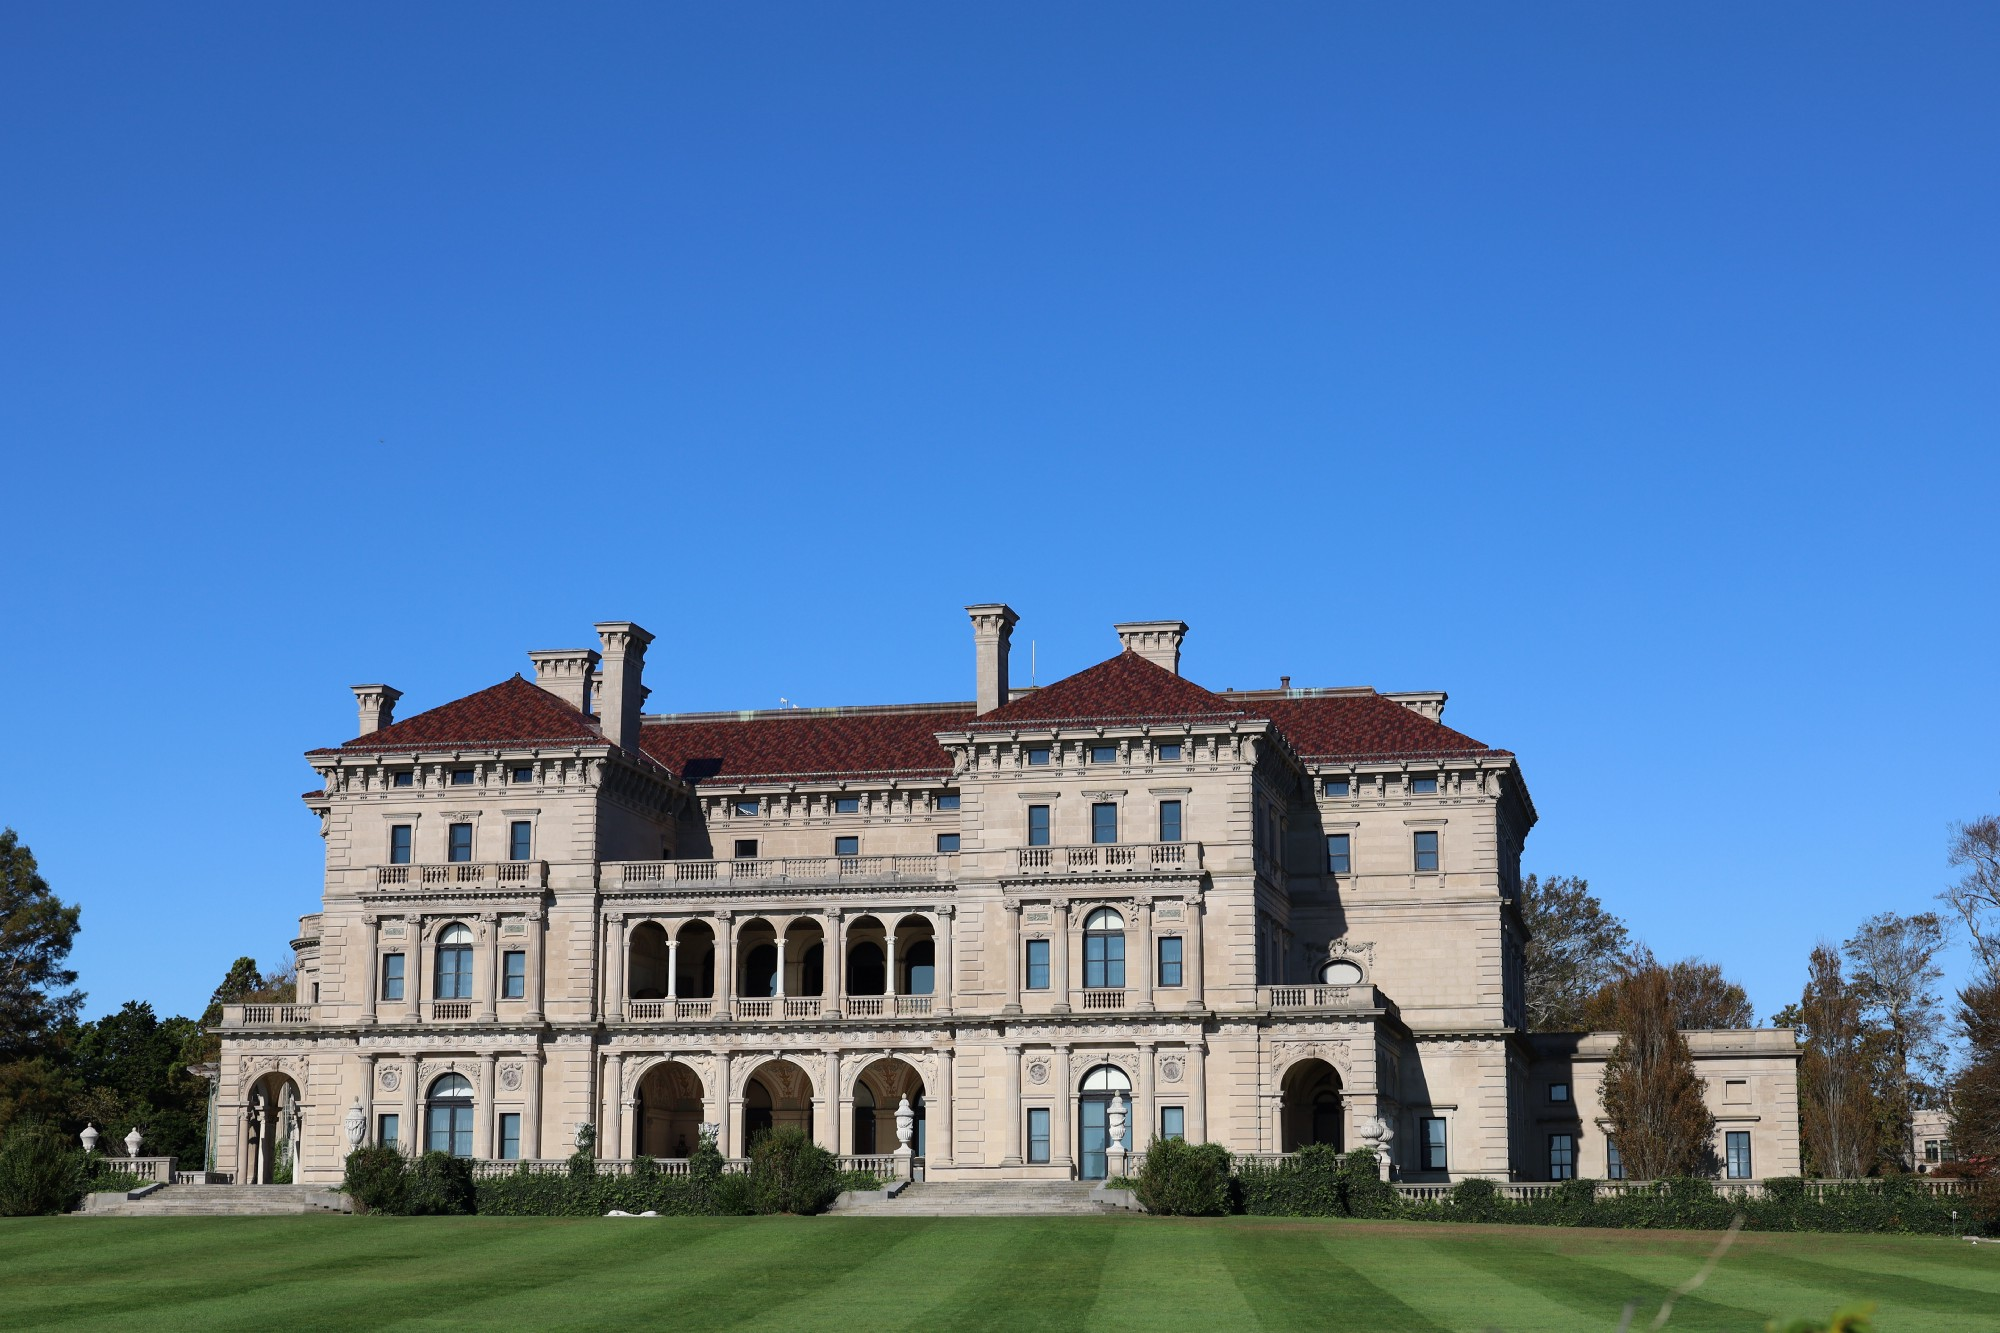 """Massive mansion from the so-called """"Guilded Age"""" with a perfectly manicured lawn in front and a cloudless blue sky above."""